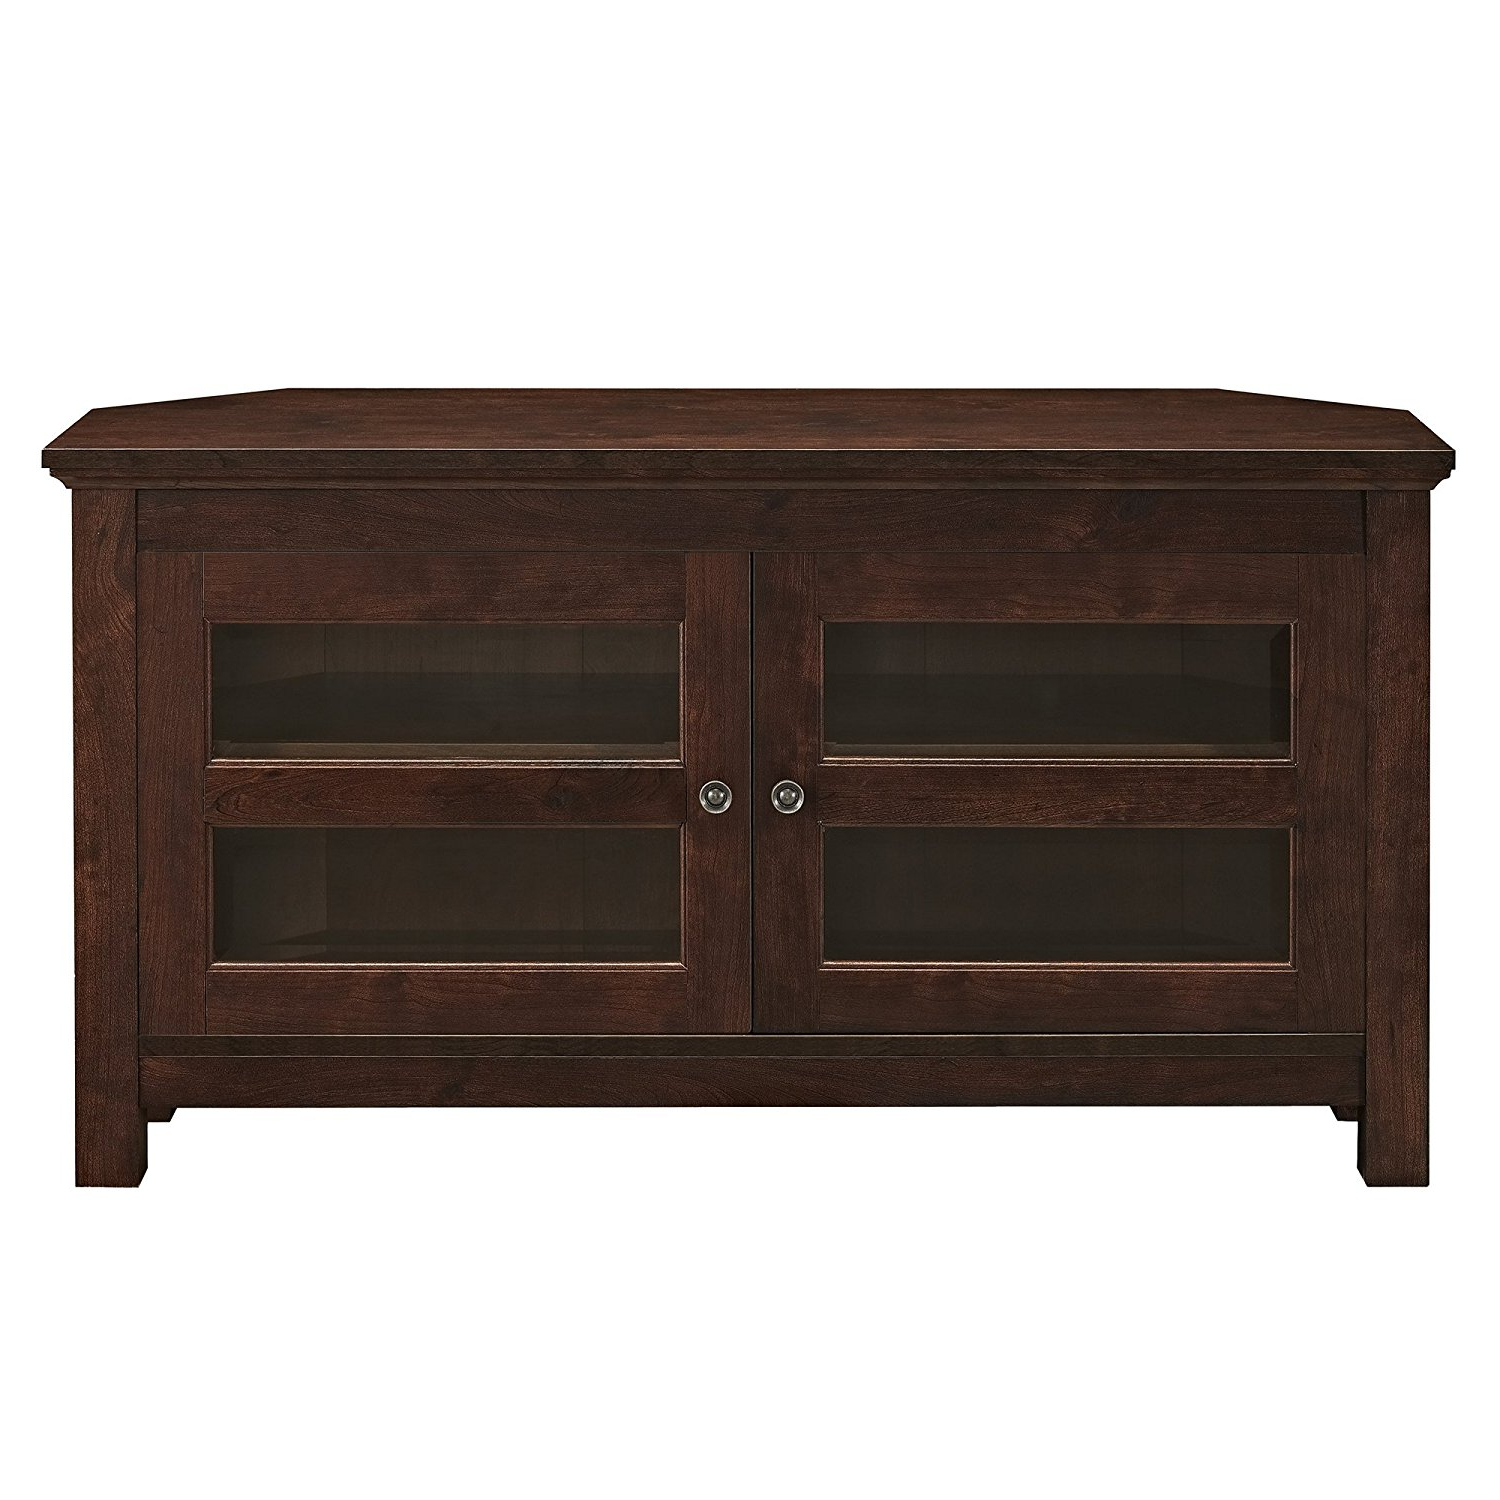 Walker Edison 44 Inch Cordoba Corner Tv Stand Console In Intended For Tasi Traditional Windowpane Corner Tv Stands (View 4 of 20)